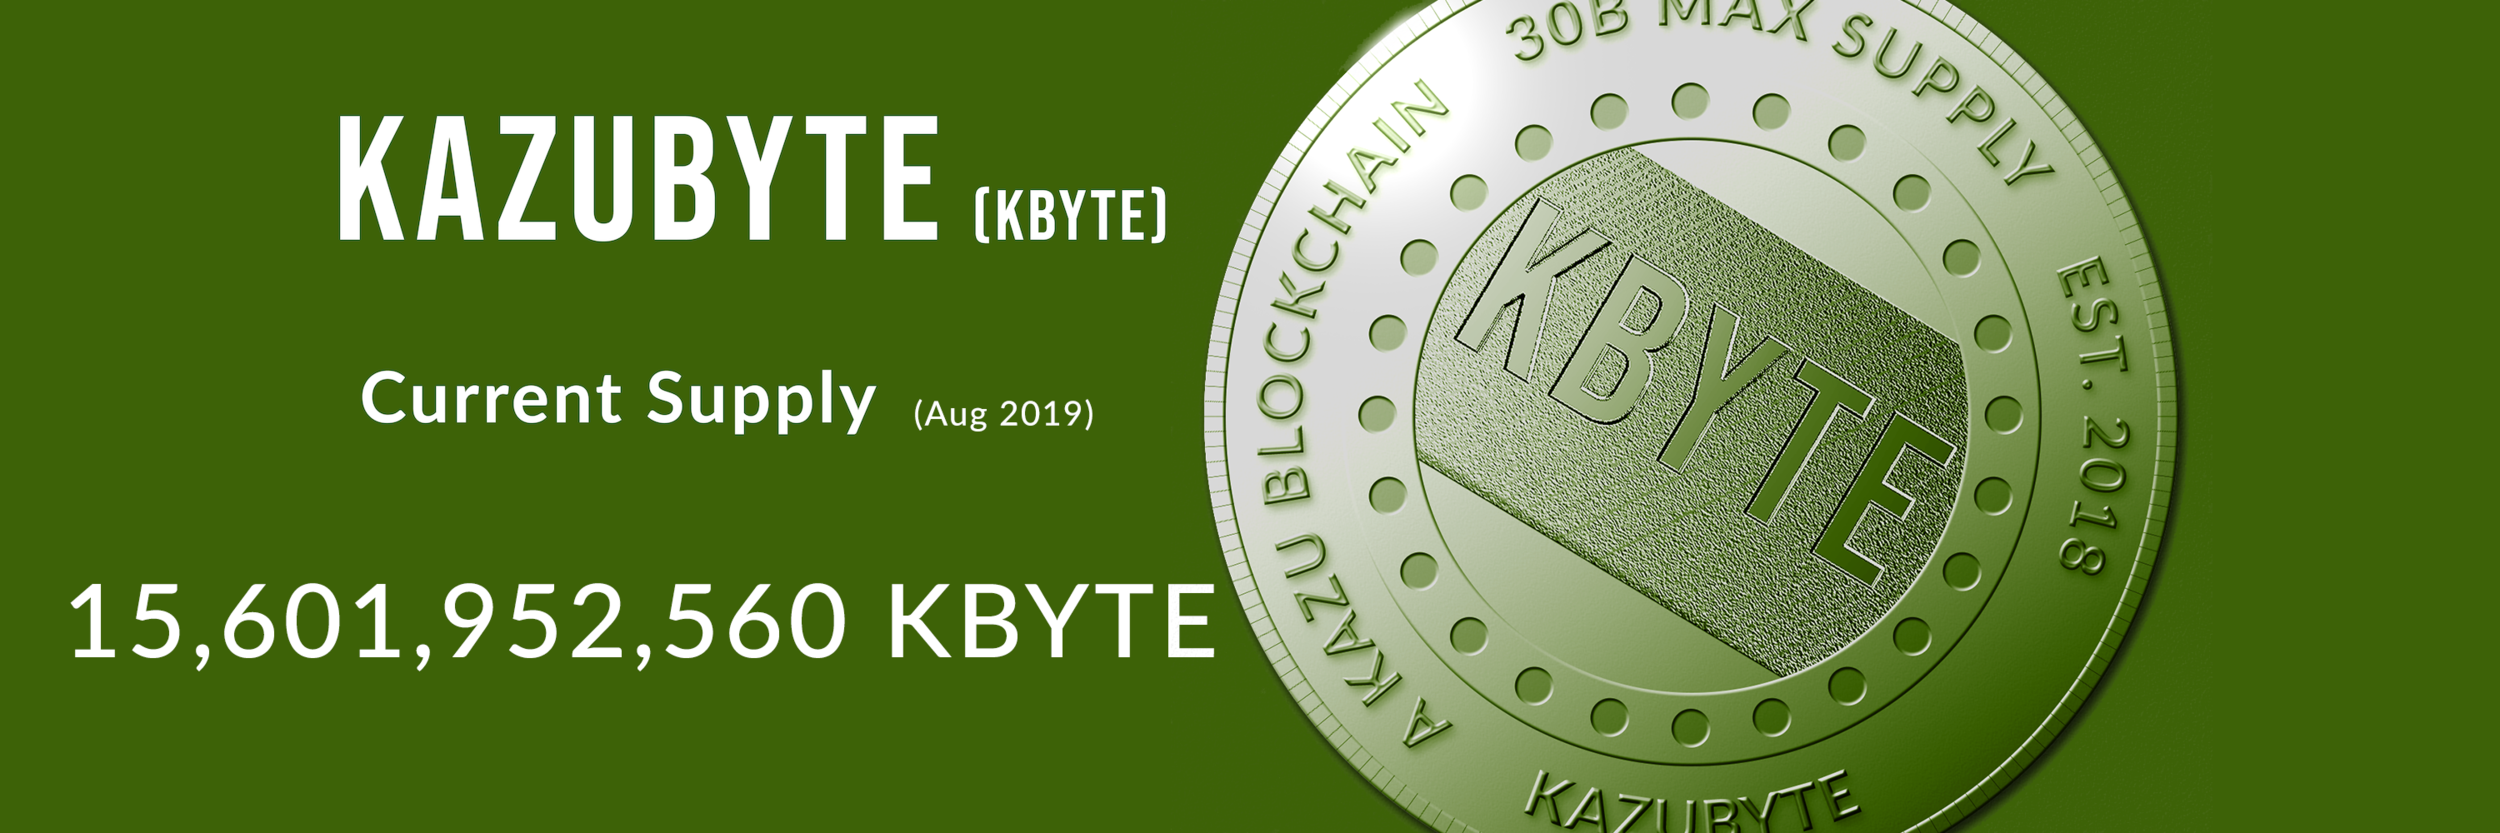 KBYTE BANNER.png